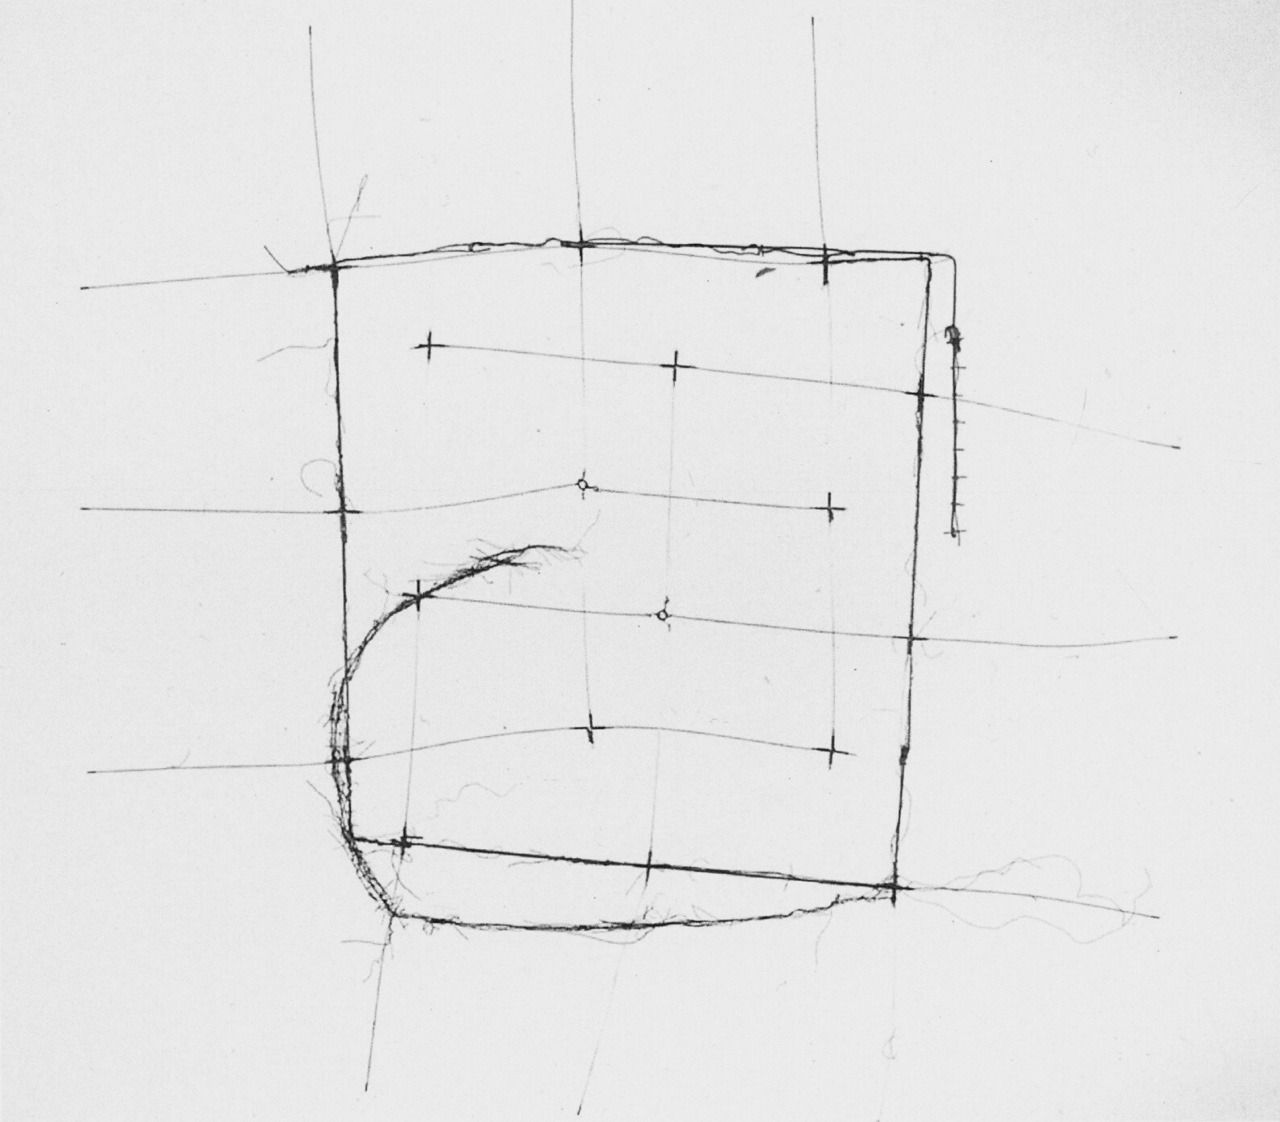 Gego Drawing without paper (no.85/12) 1985 Stainless Steel